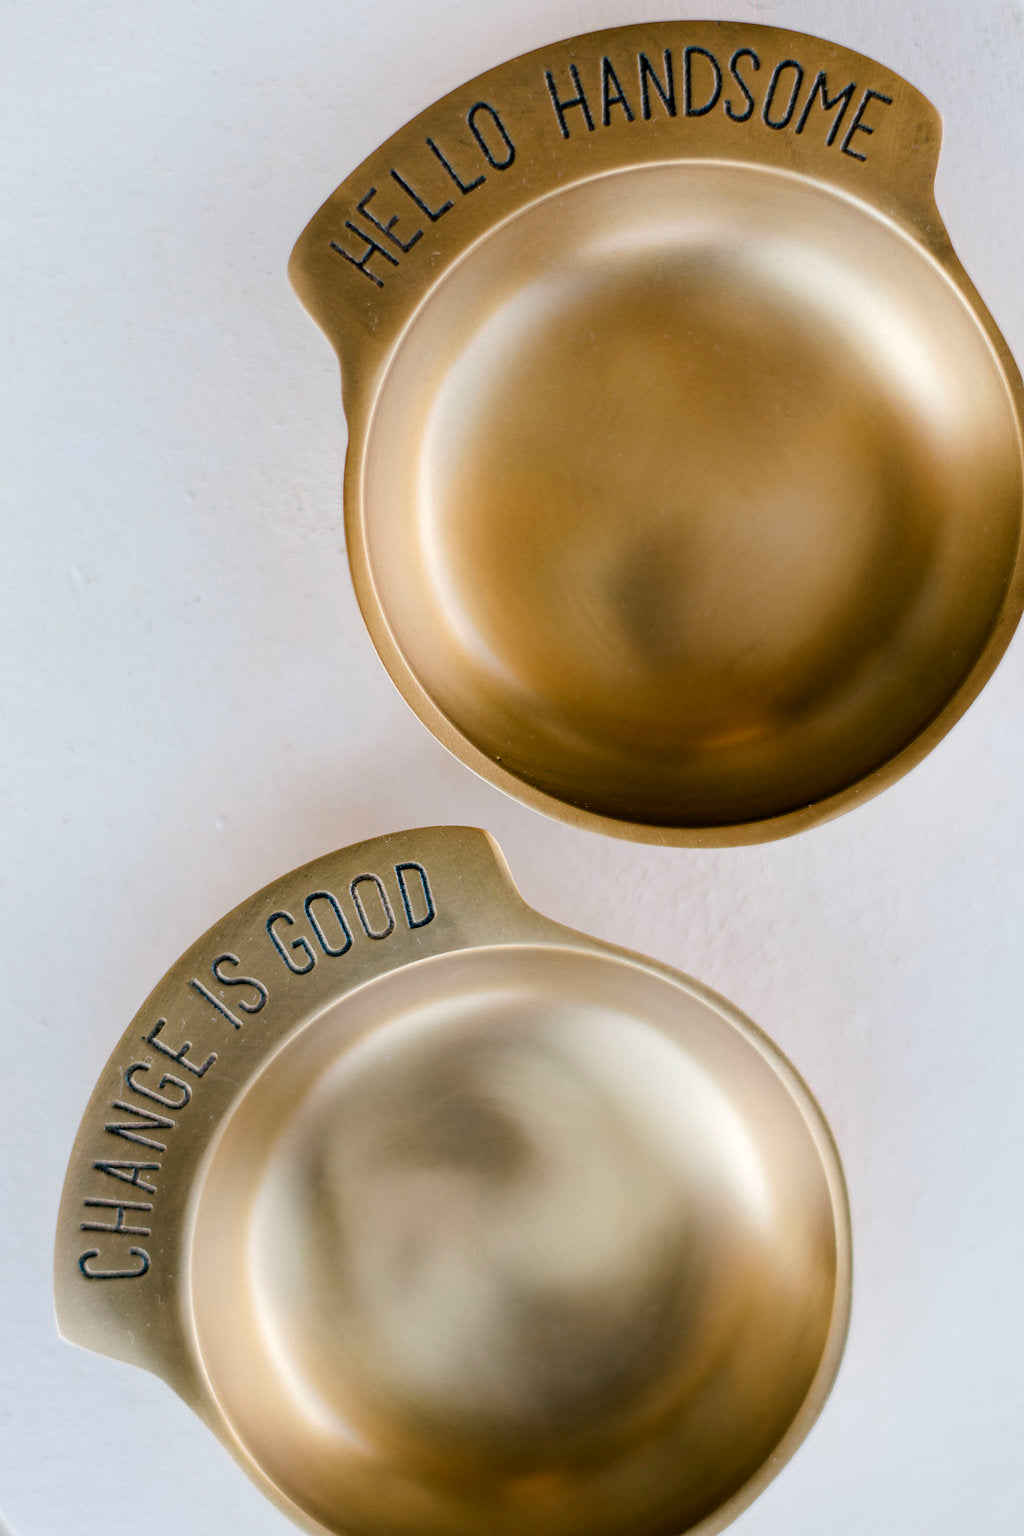 Hello Handsome Brass Catchall